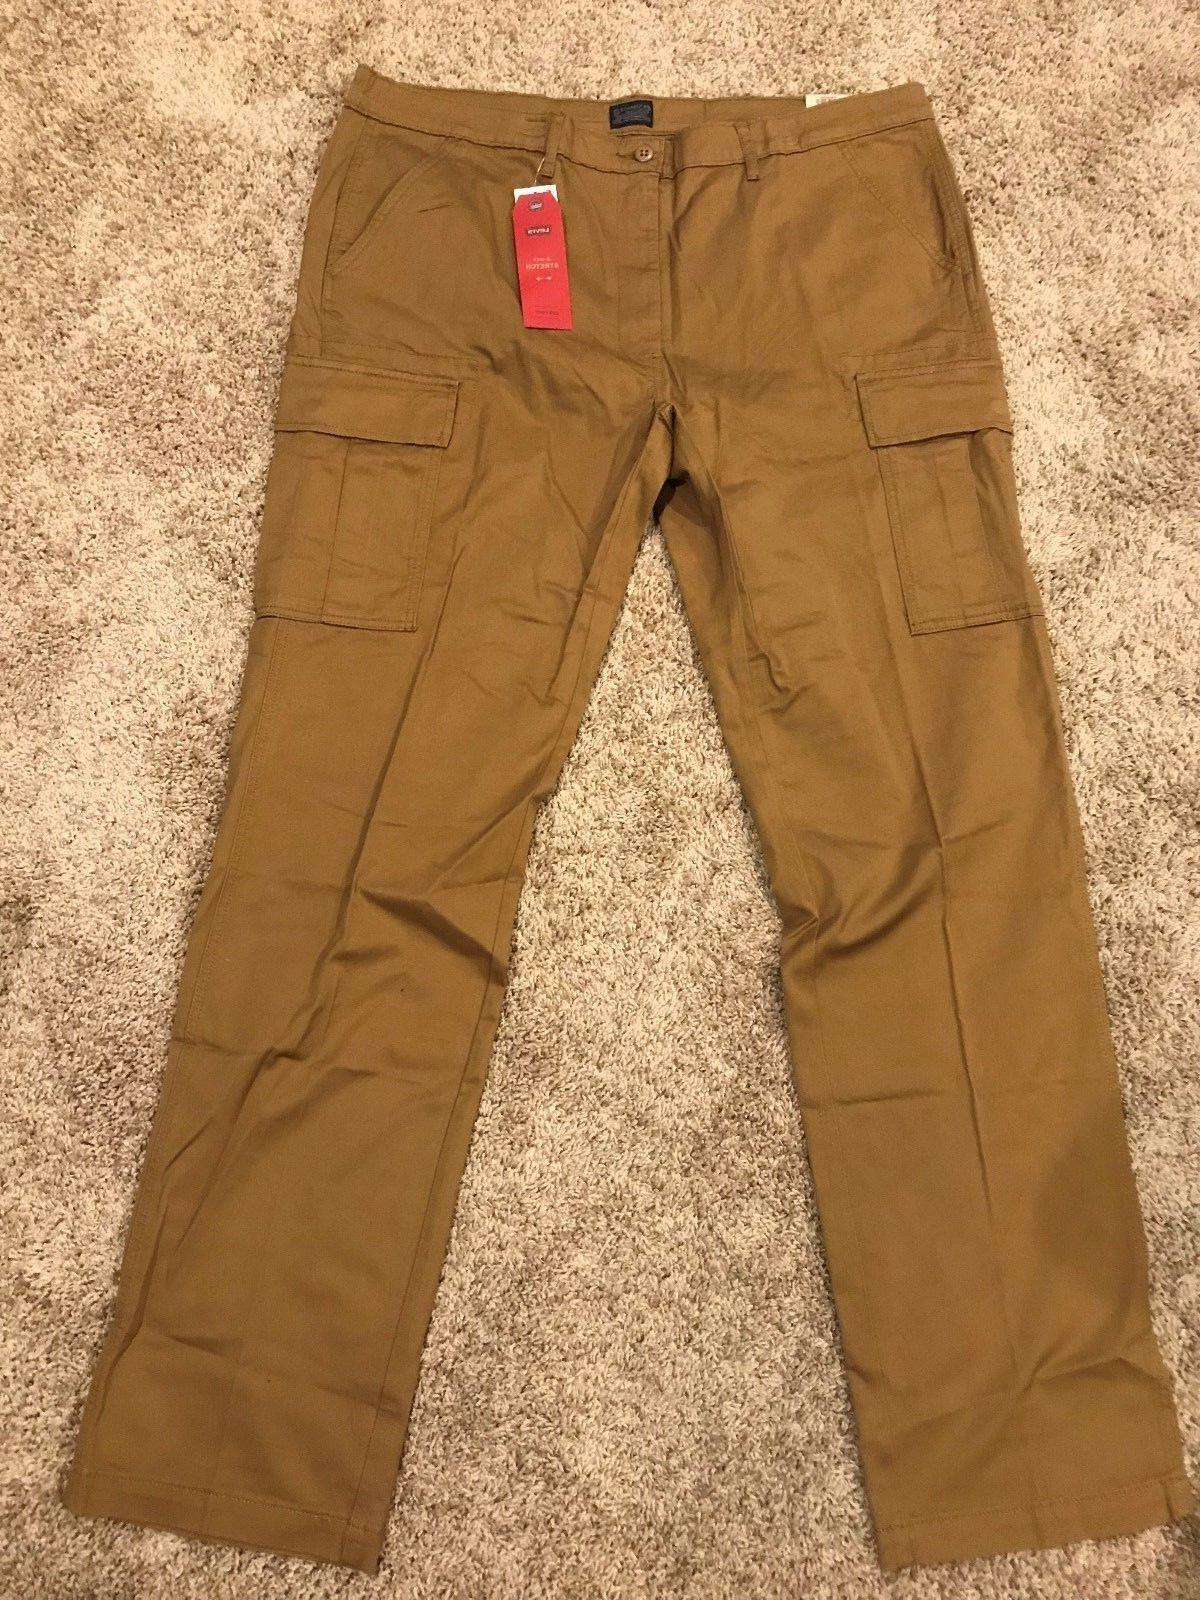 MENS ATHLETIC FIT W/STRETCH CARGO PANTS BIG&TALL SIZES NEW